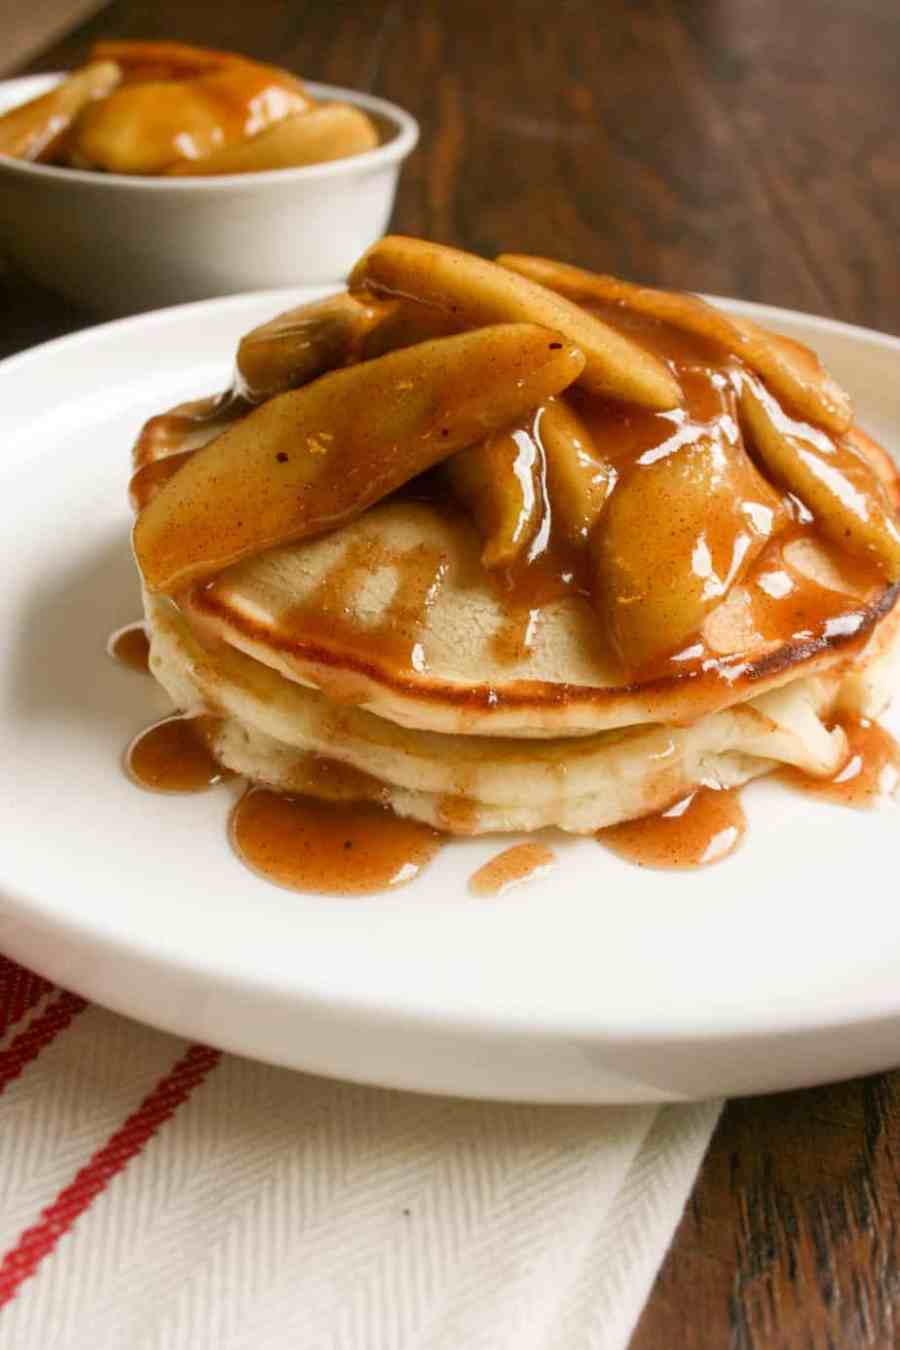 Pancakes with autumn apple topping is the perfect breakfast for fall! Sweet, light an airy, no need for syrup on these!